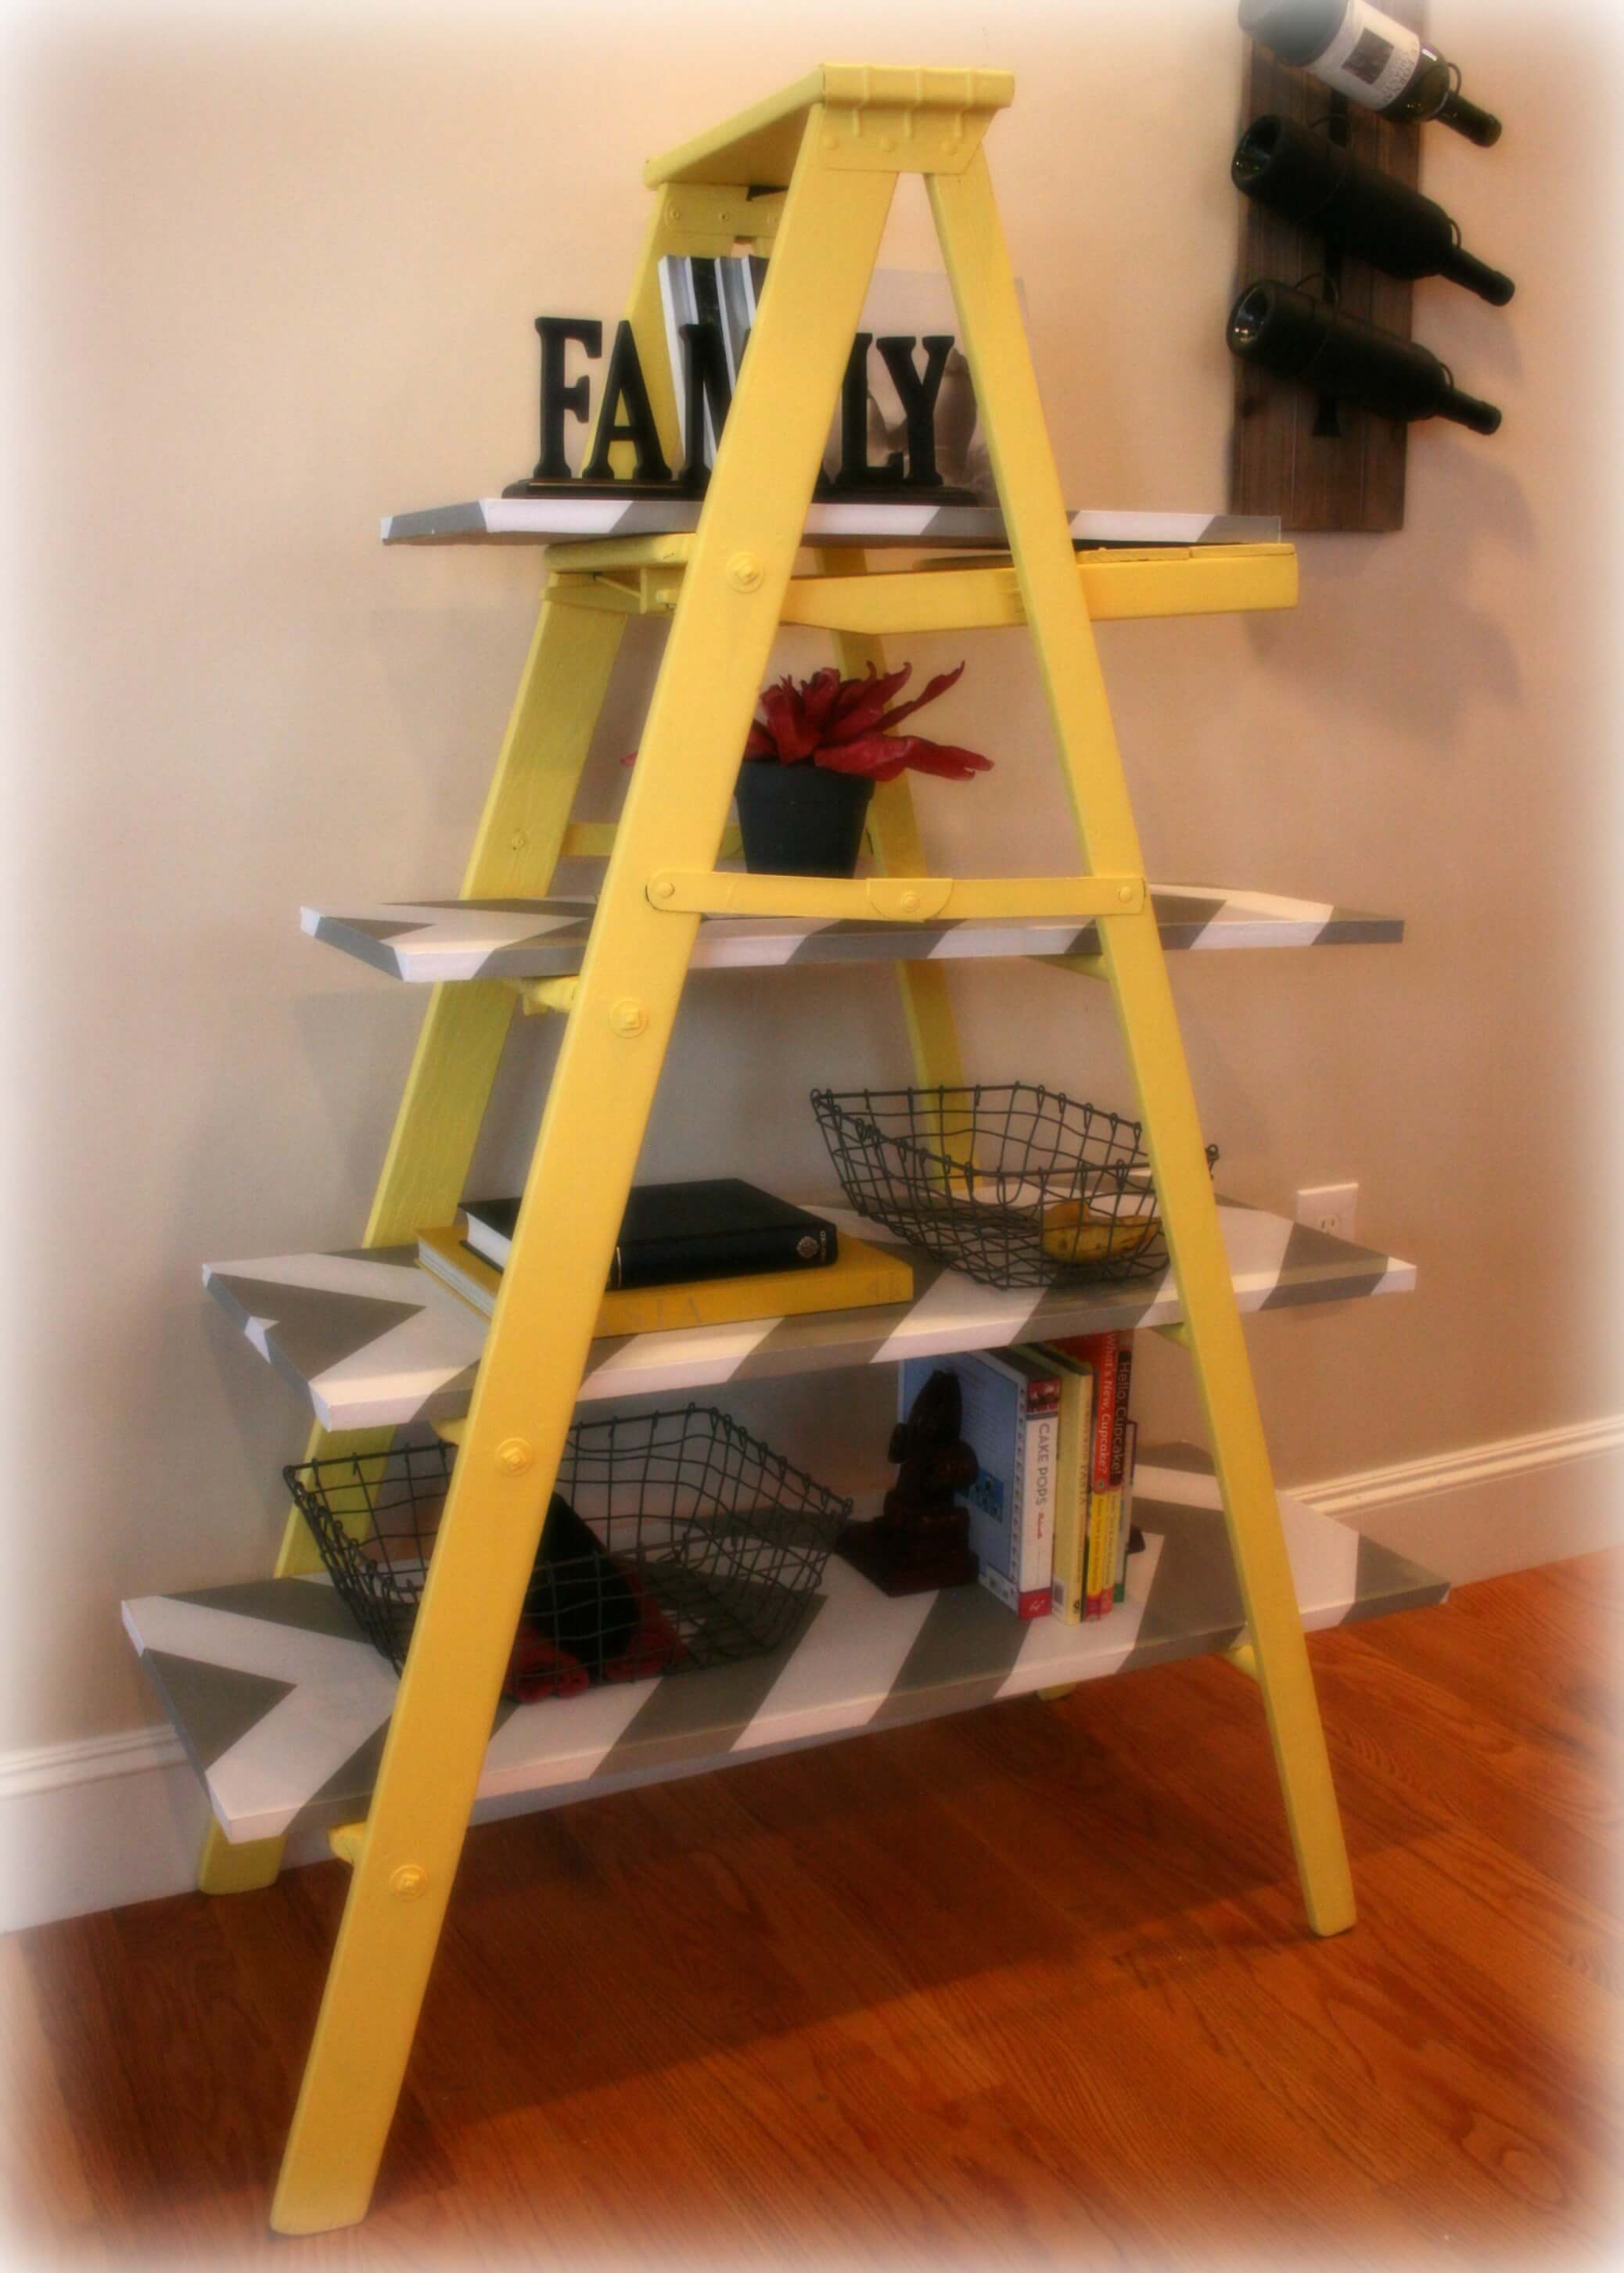 Vintage Yellow Wooden Leaning Ladder Shelf Build It Or Buy It